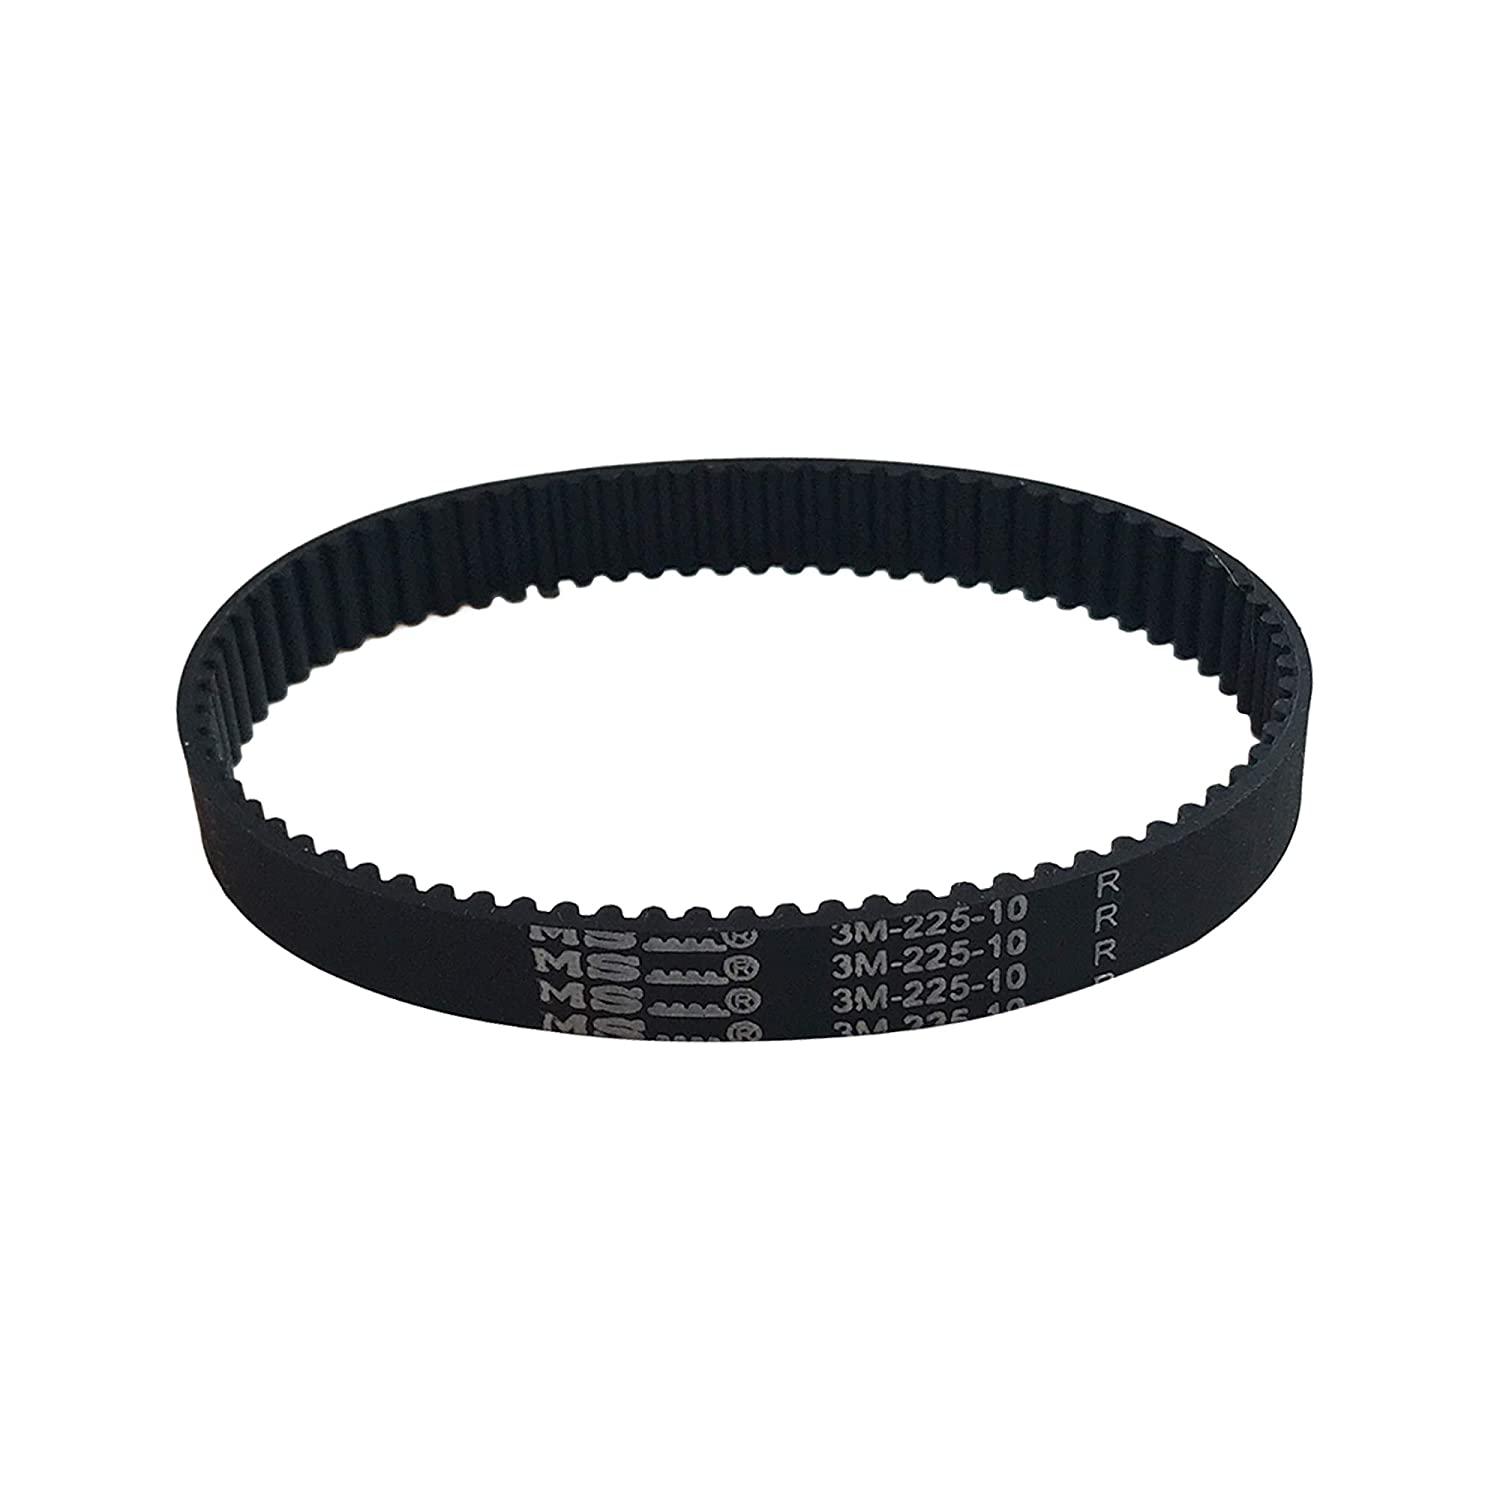 Crucial Vacuum Replacement Belt Parts - Compatible with Dyson Part # 16200 16216 HRC1 - Fits Models 16200, 40300, 40400 HHT-011, HHT-080, HHT-081, HHT-090, HHT-145, HHT-149, HHT-085 HAP-244 (1 Pack)